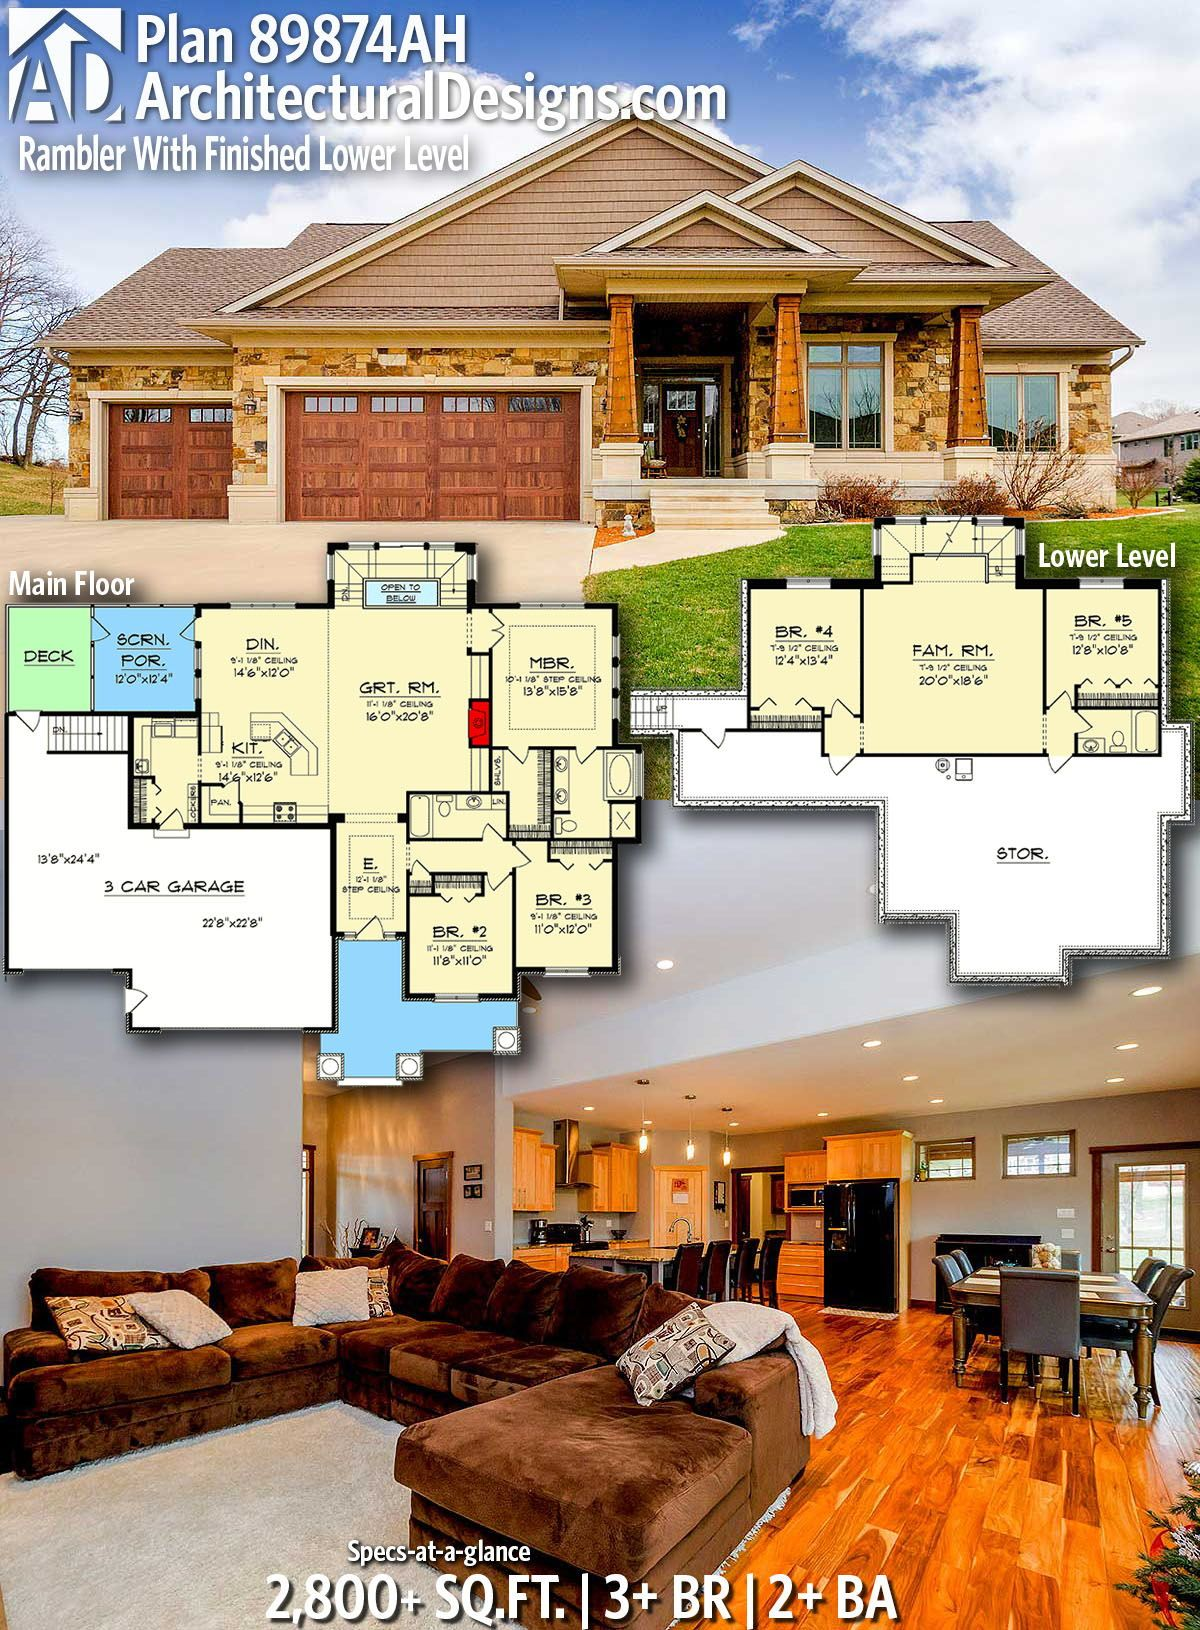 Home Plans Nice Interior And Exterior Home Design With: Plan 89874AH: Rambler With Finished Lower Level